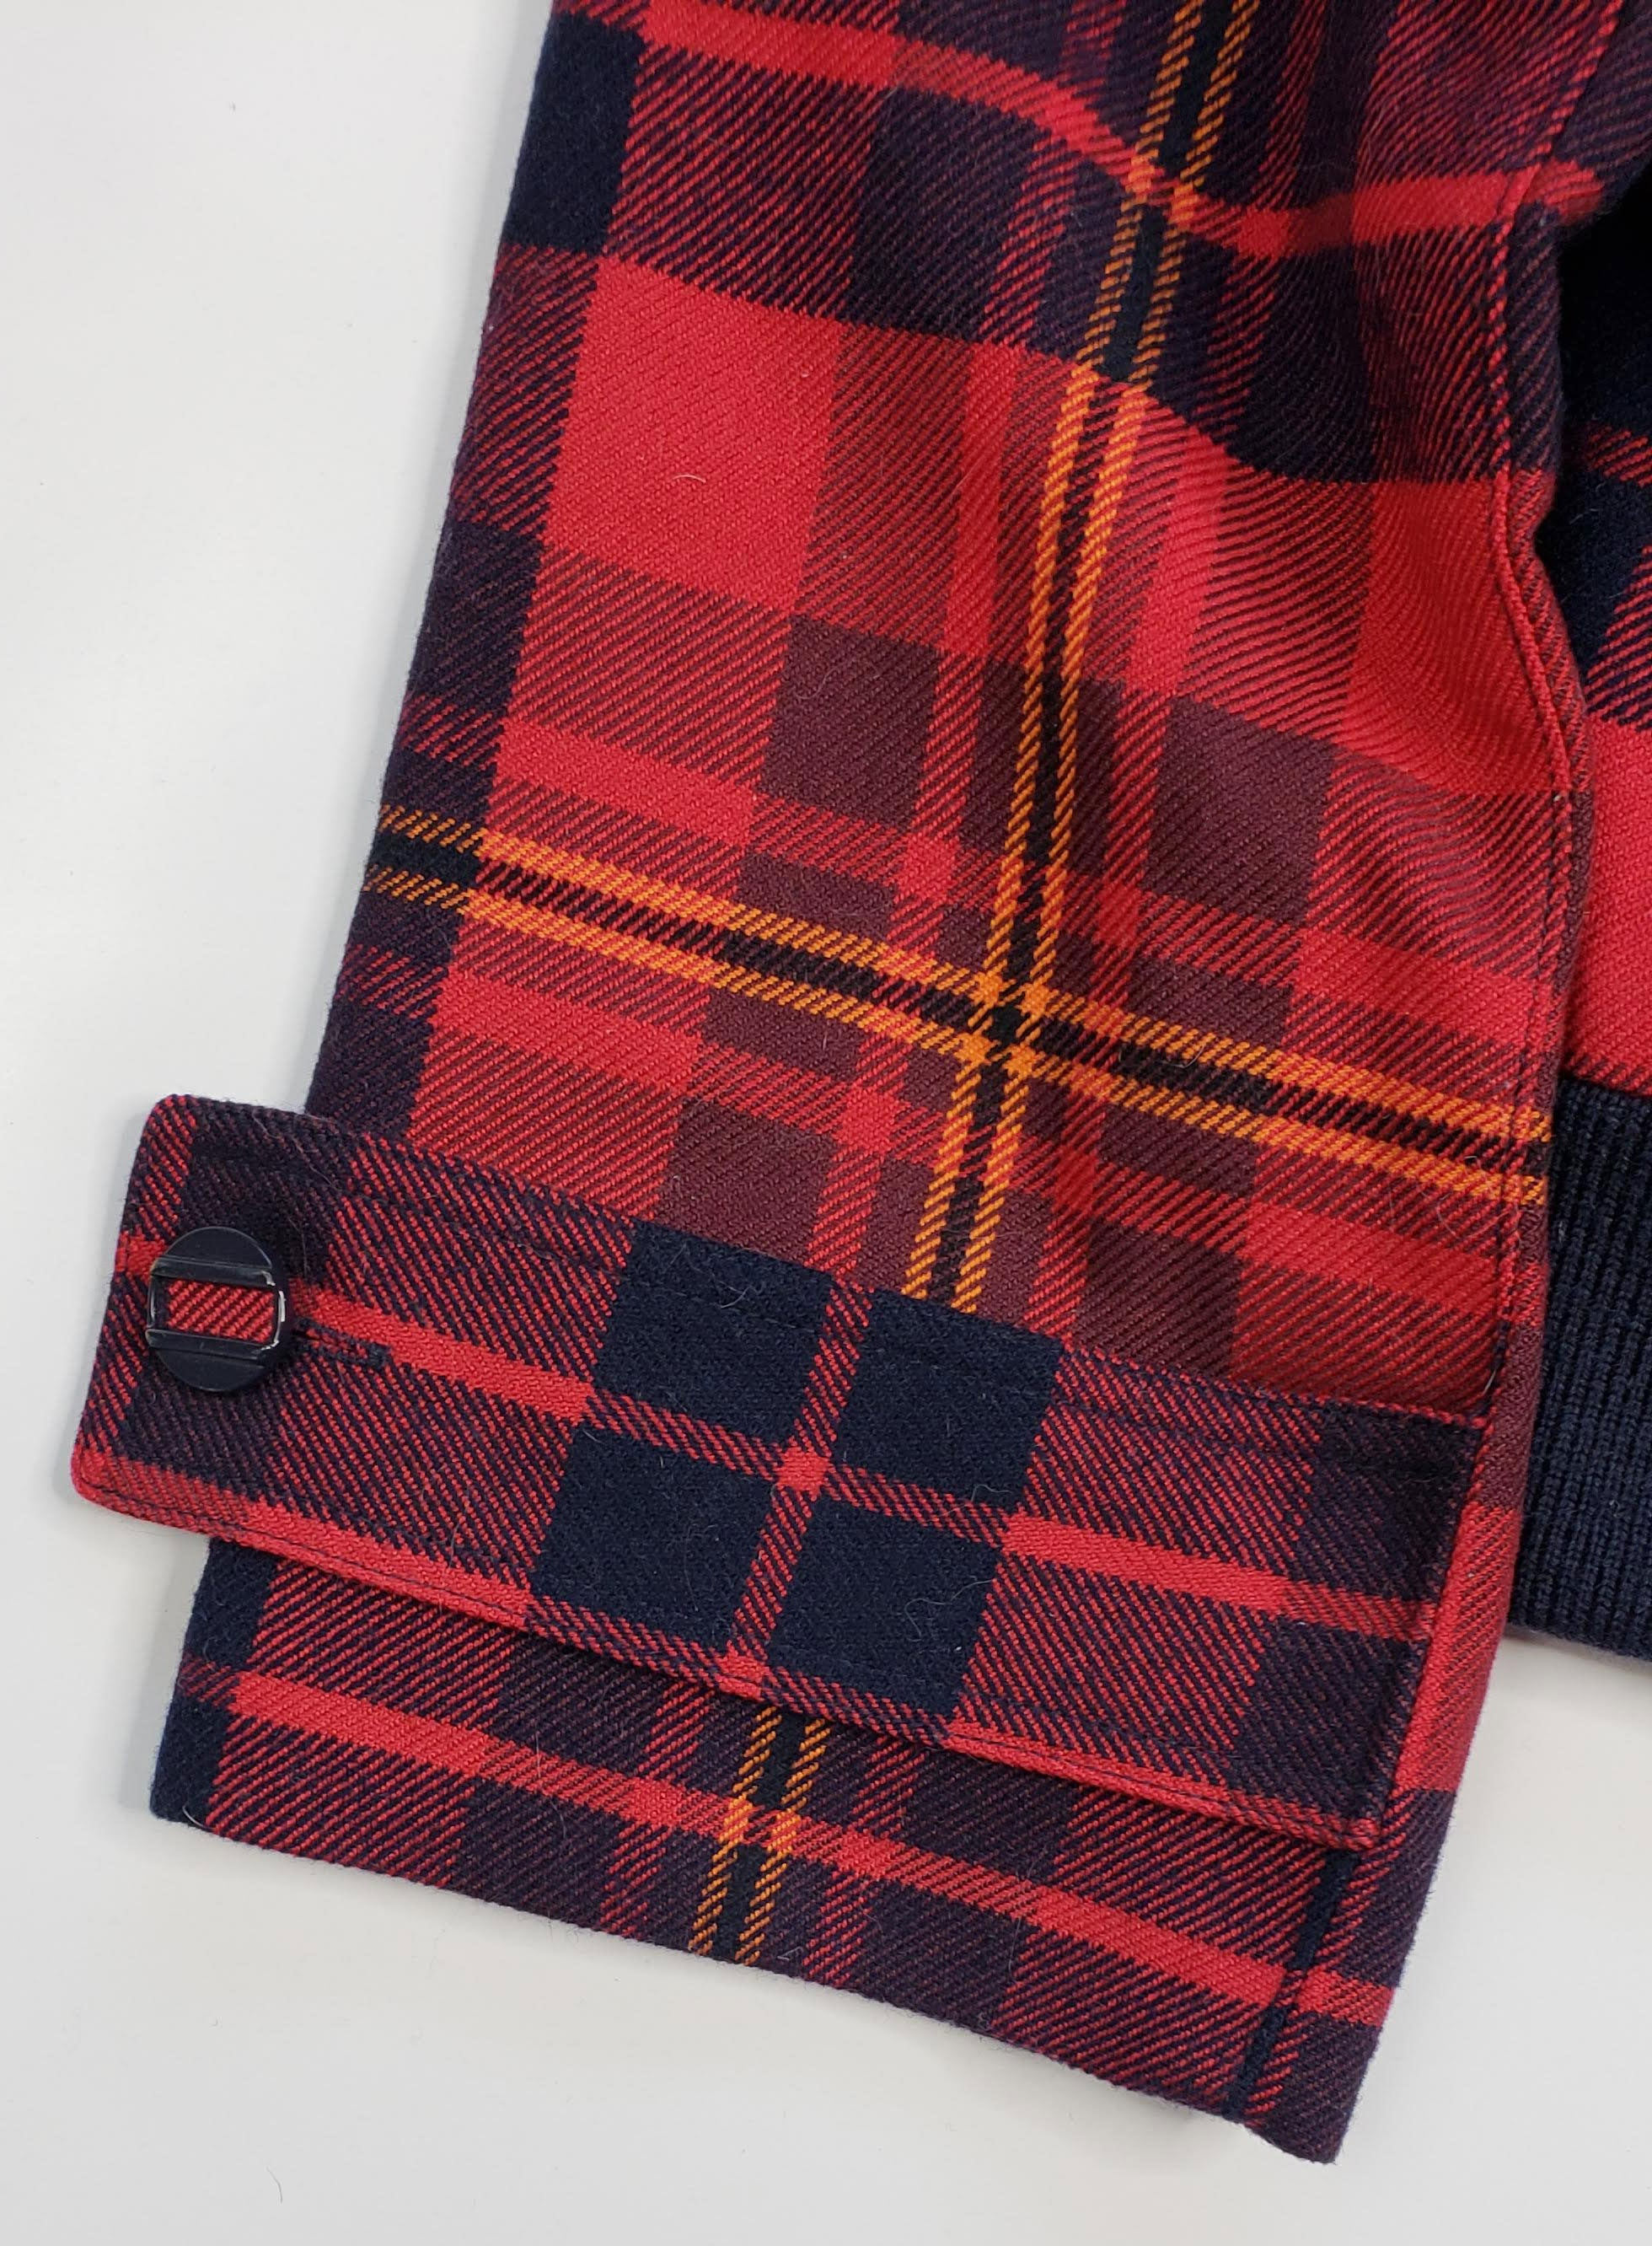 Gwen Stefani L.A.M.B. Plaid Jacket (2007)